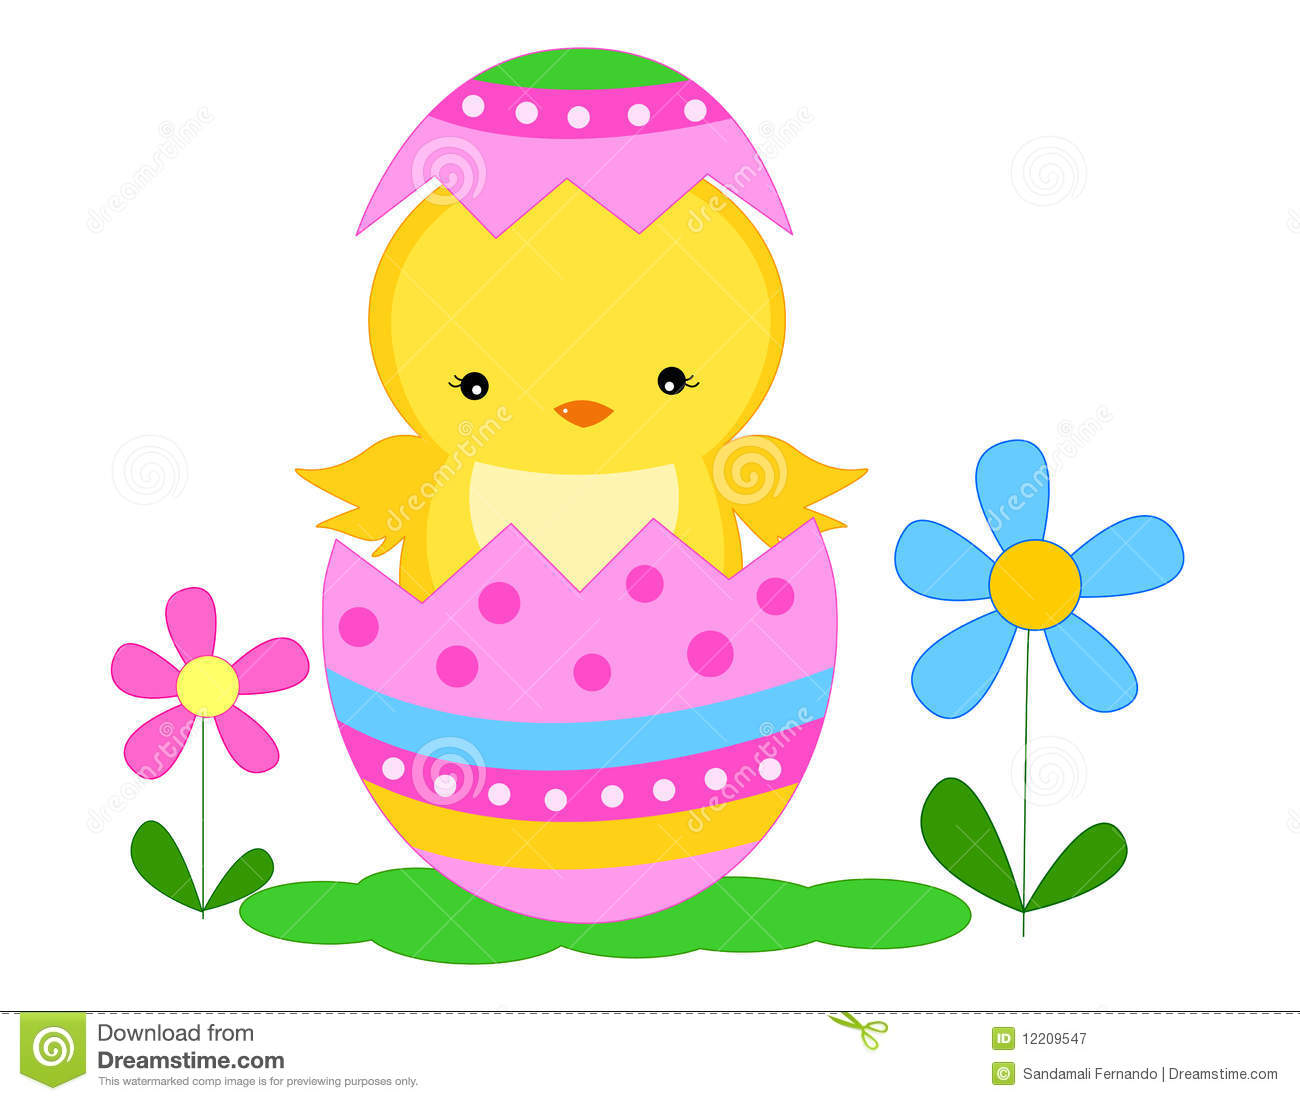 easter egg clipart for kids at getdrawings com free for personal rh getdrawings com cute easter chick clipart cute easter chick clipart